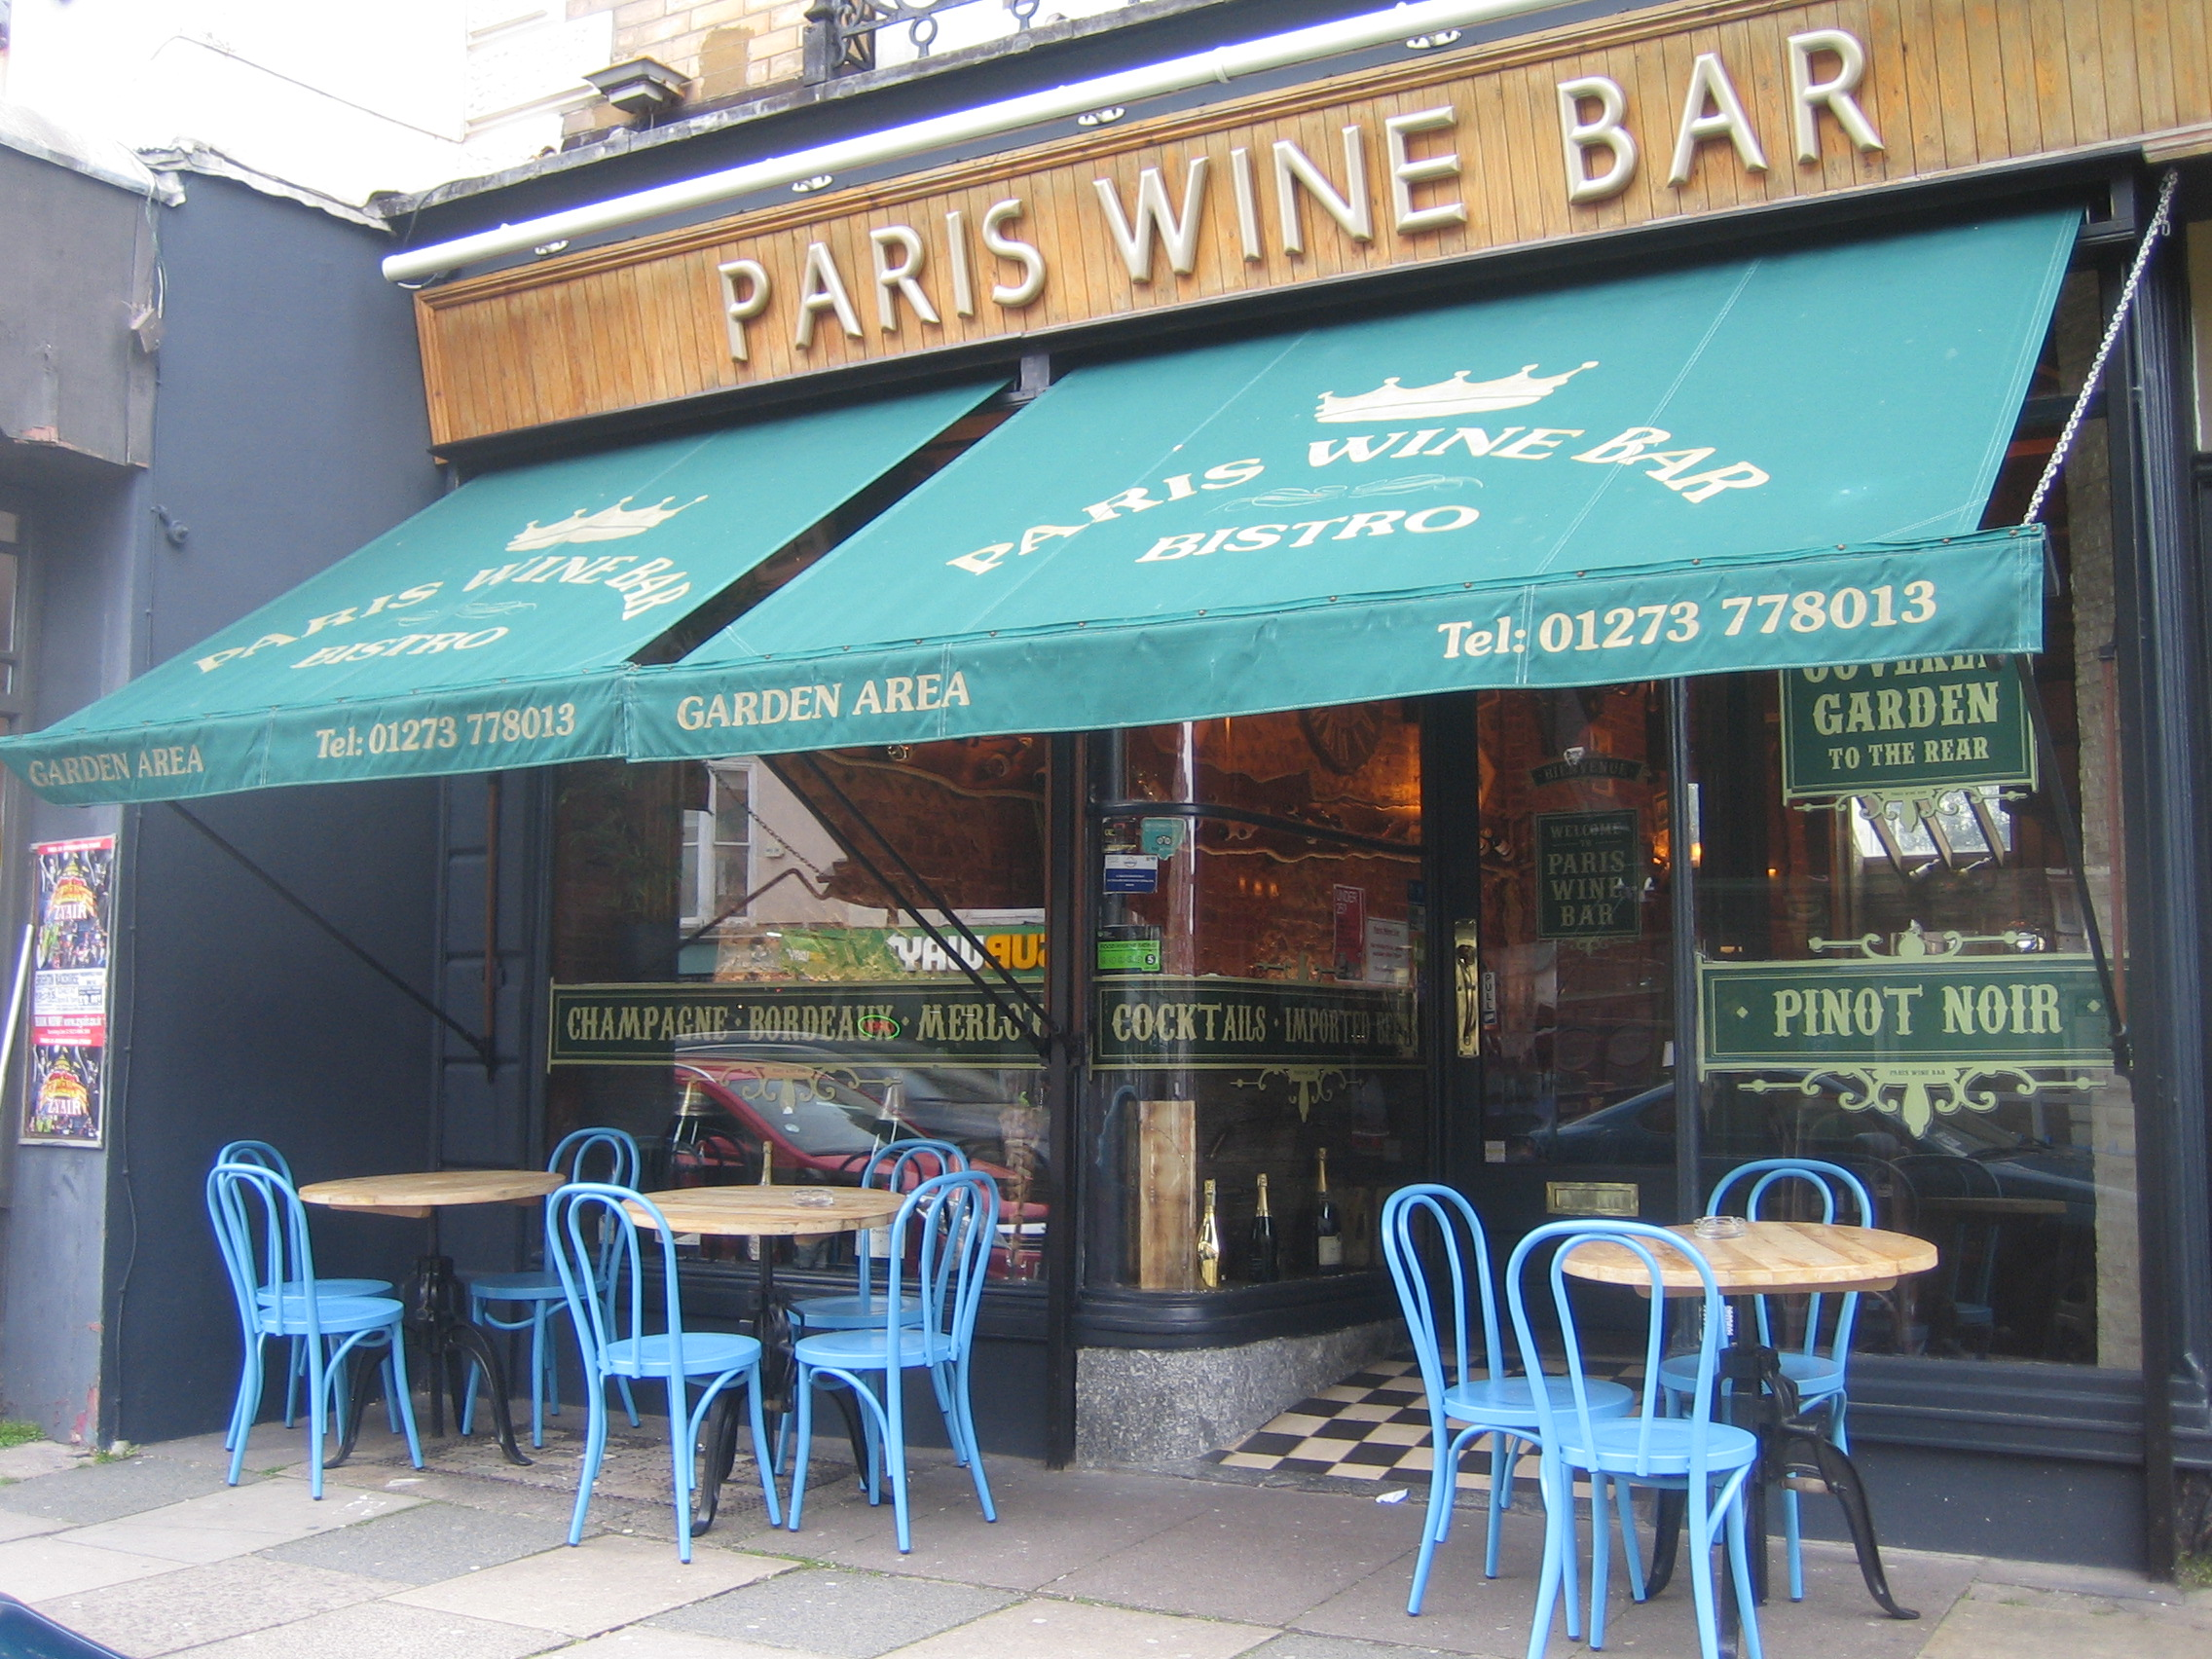 Paris Wine Bar March 2020 (2)